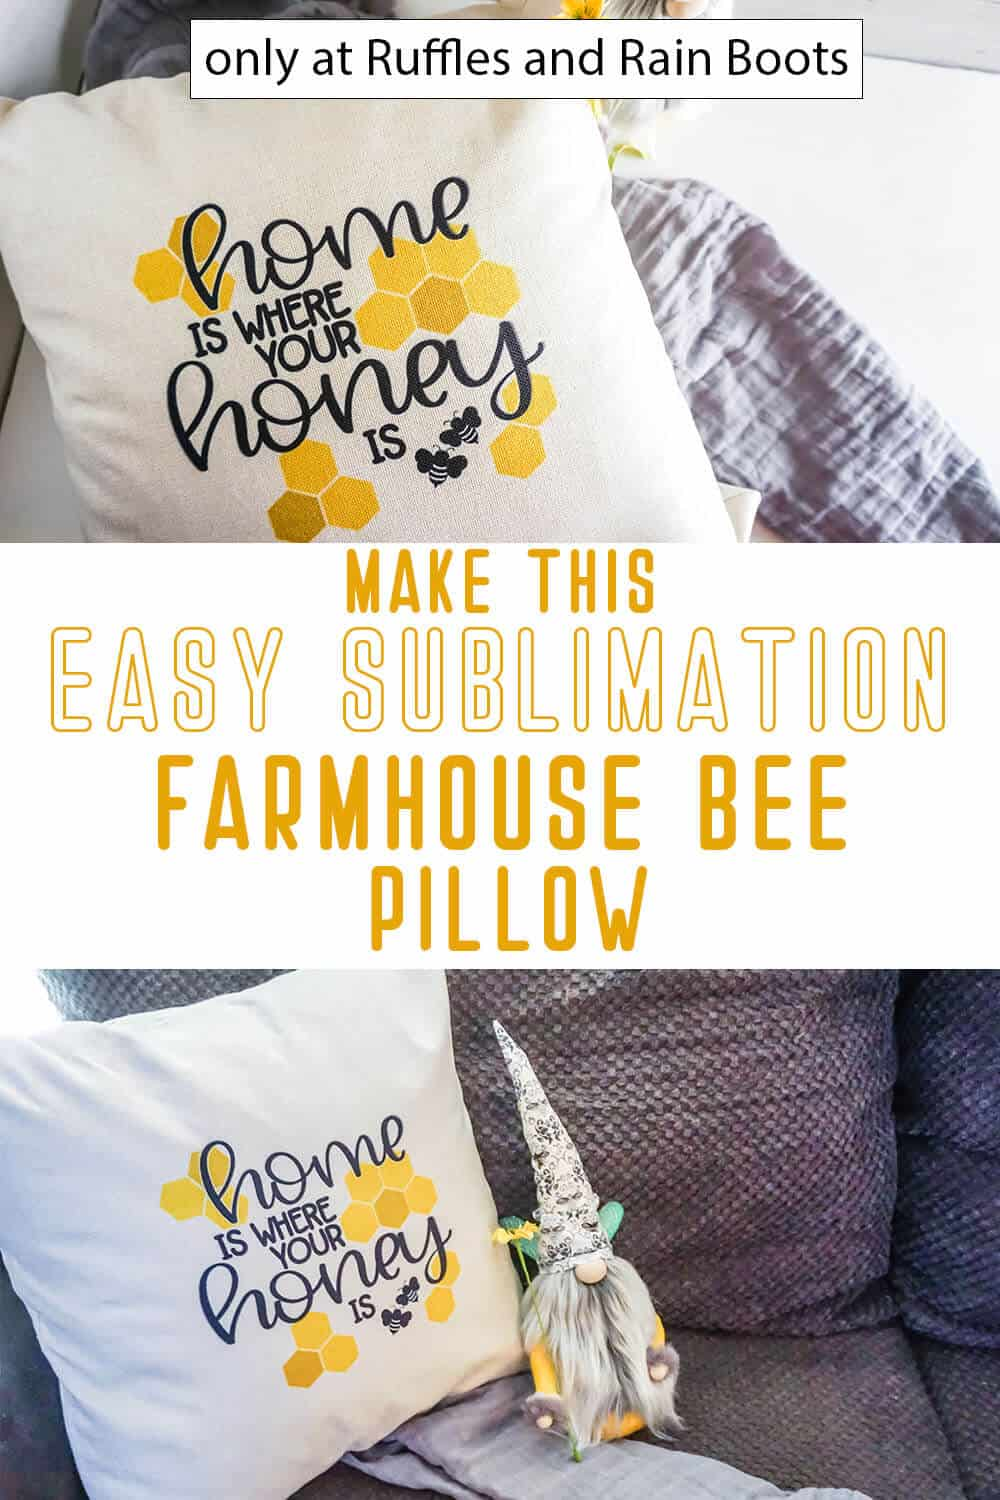 photo collage of sublimation tutorial for a pillow farmhouse bee pillow with text which reads make this easy sublimation farmhouse bee pillow